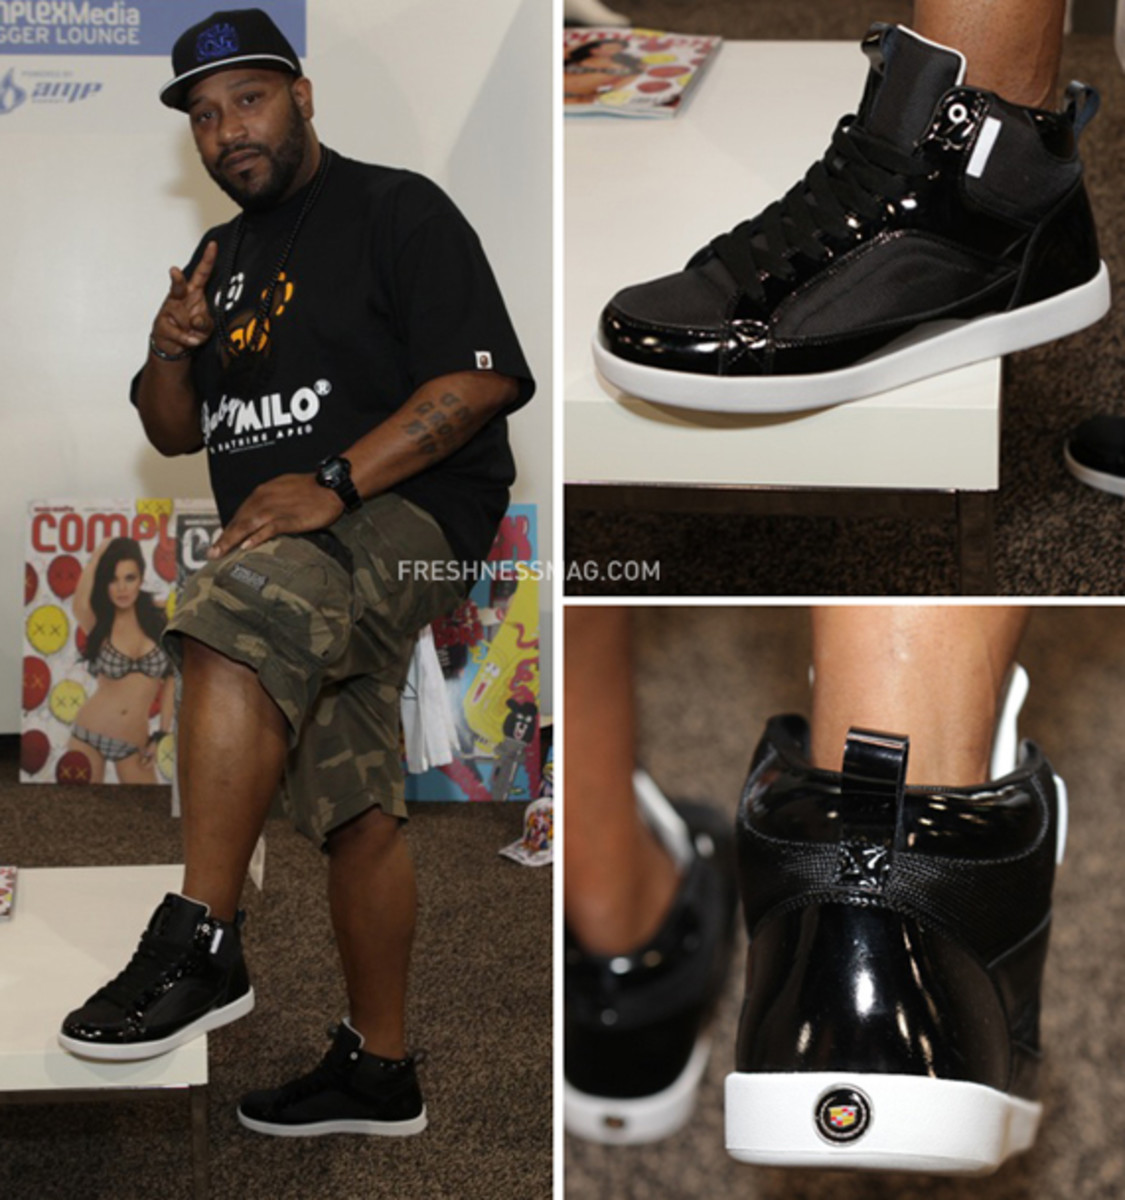 bun-b-cadillac-sneakers-00 copy